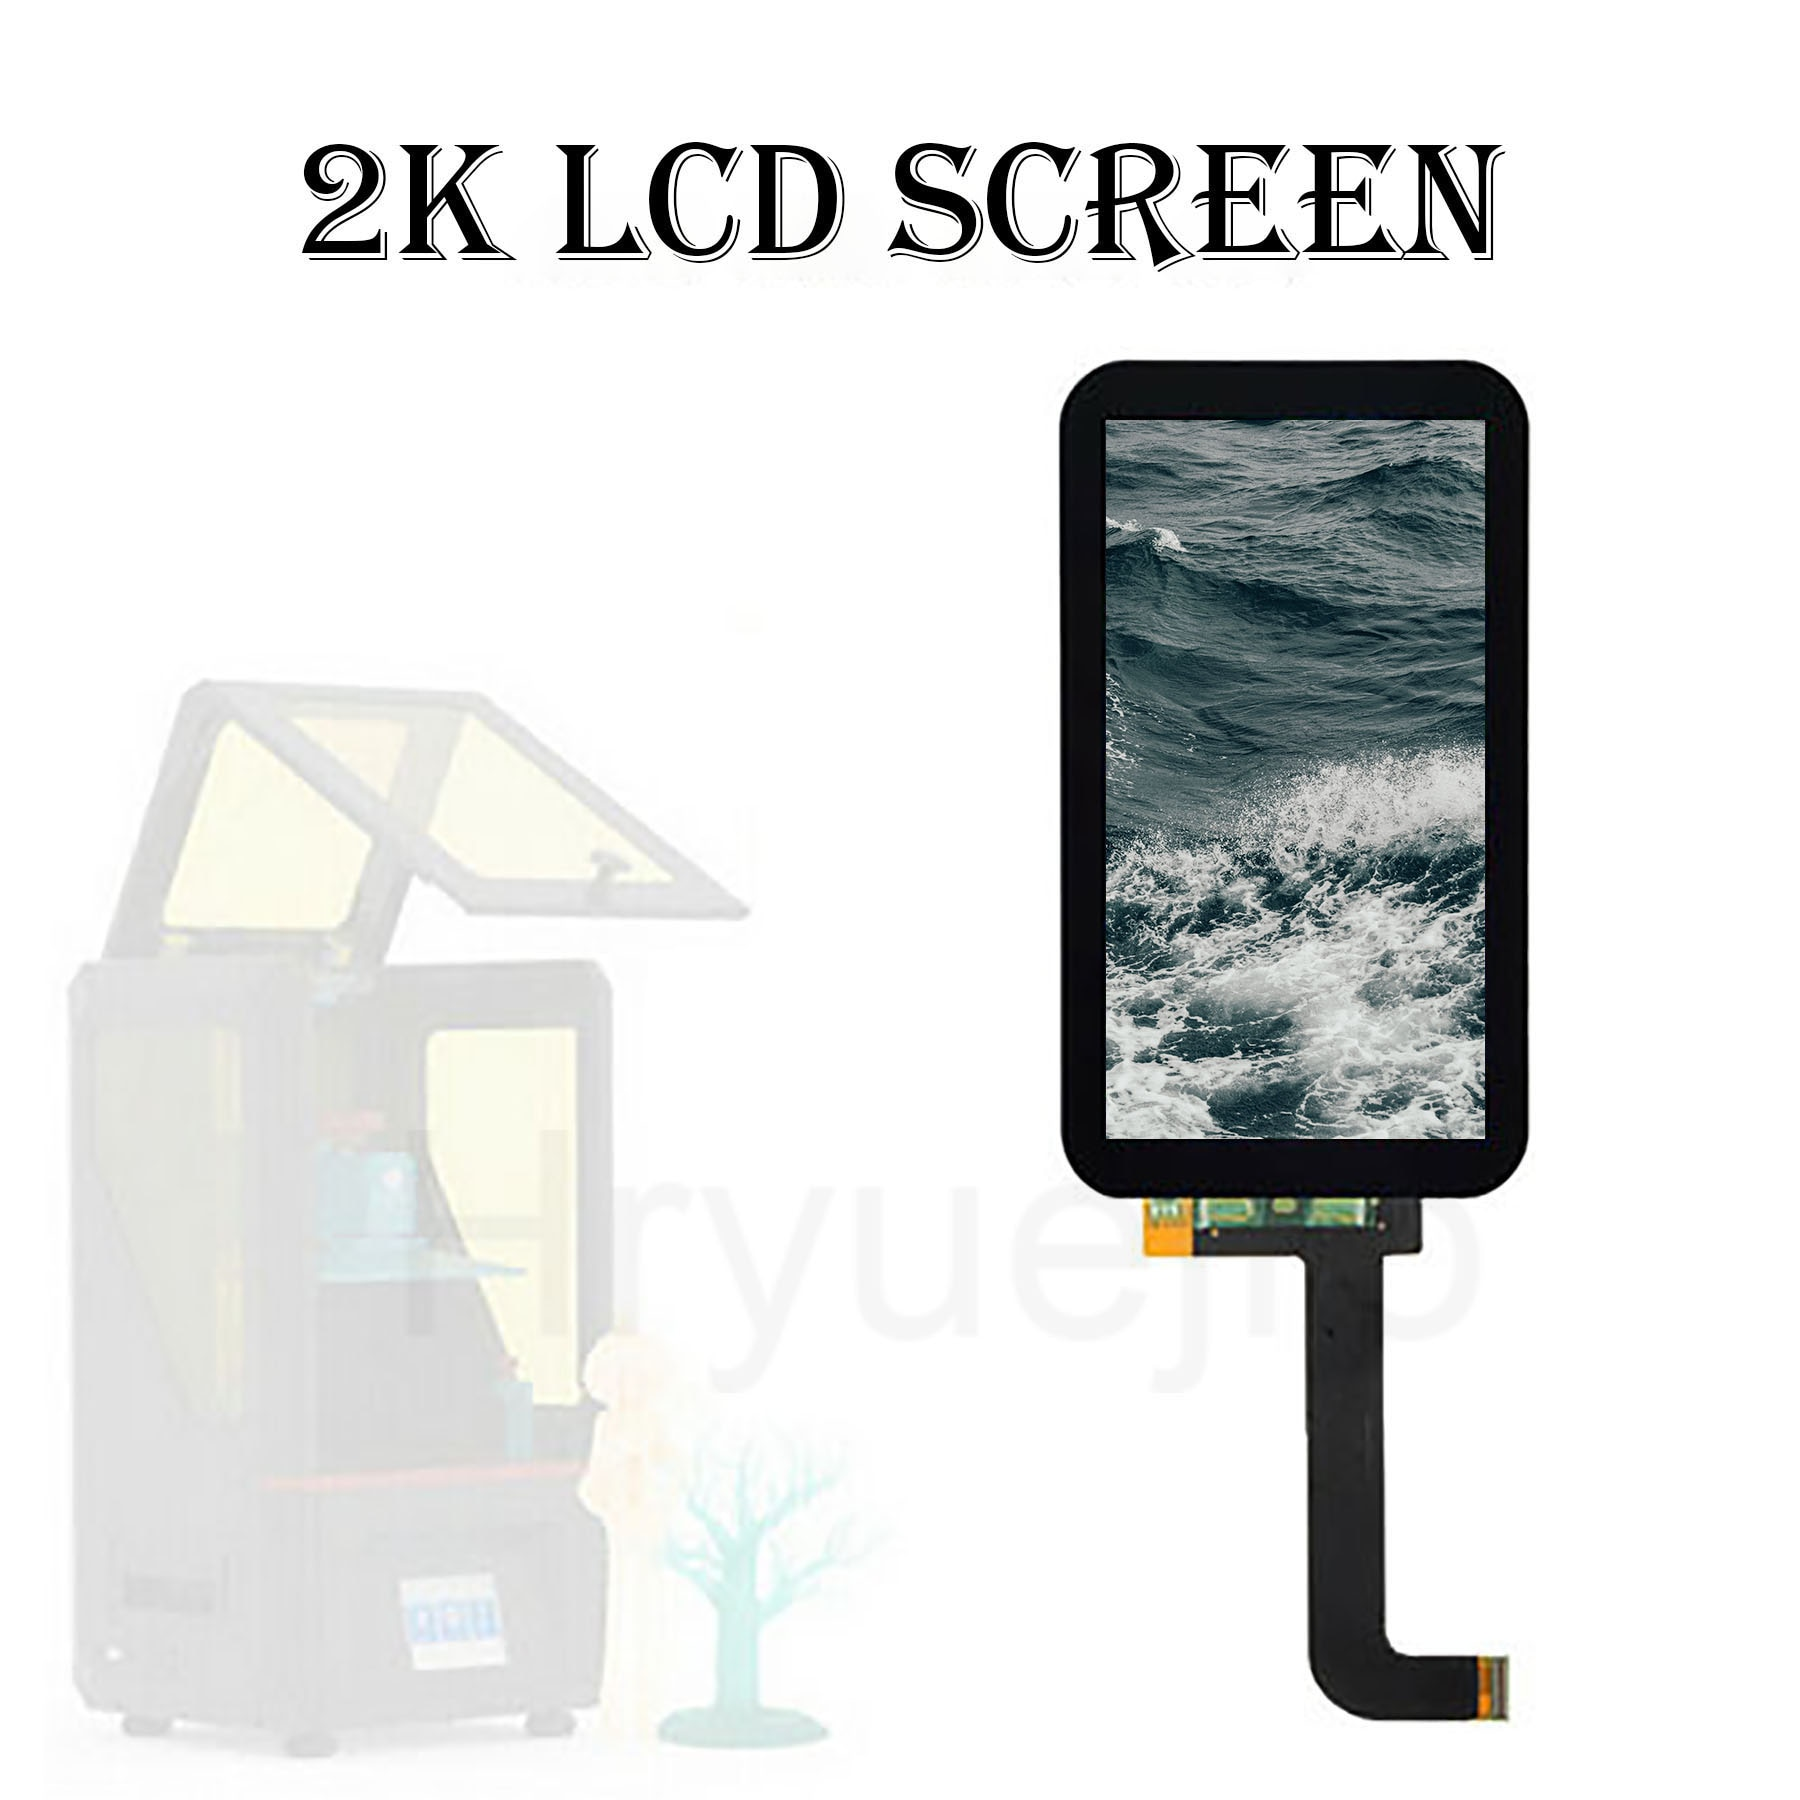 LCD Light Curing Display Screen Module 2560x1440 For ANYCUBIC PHOTON 3D Printer Parts 2K LCD Screen Accessories Repaier Replace